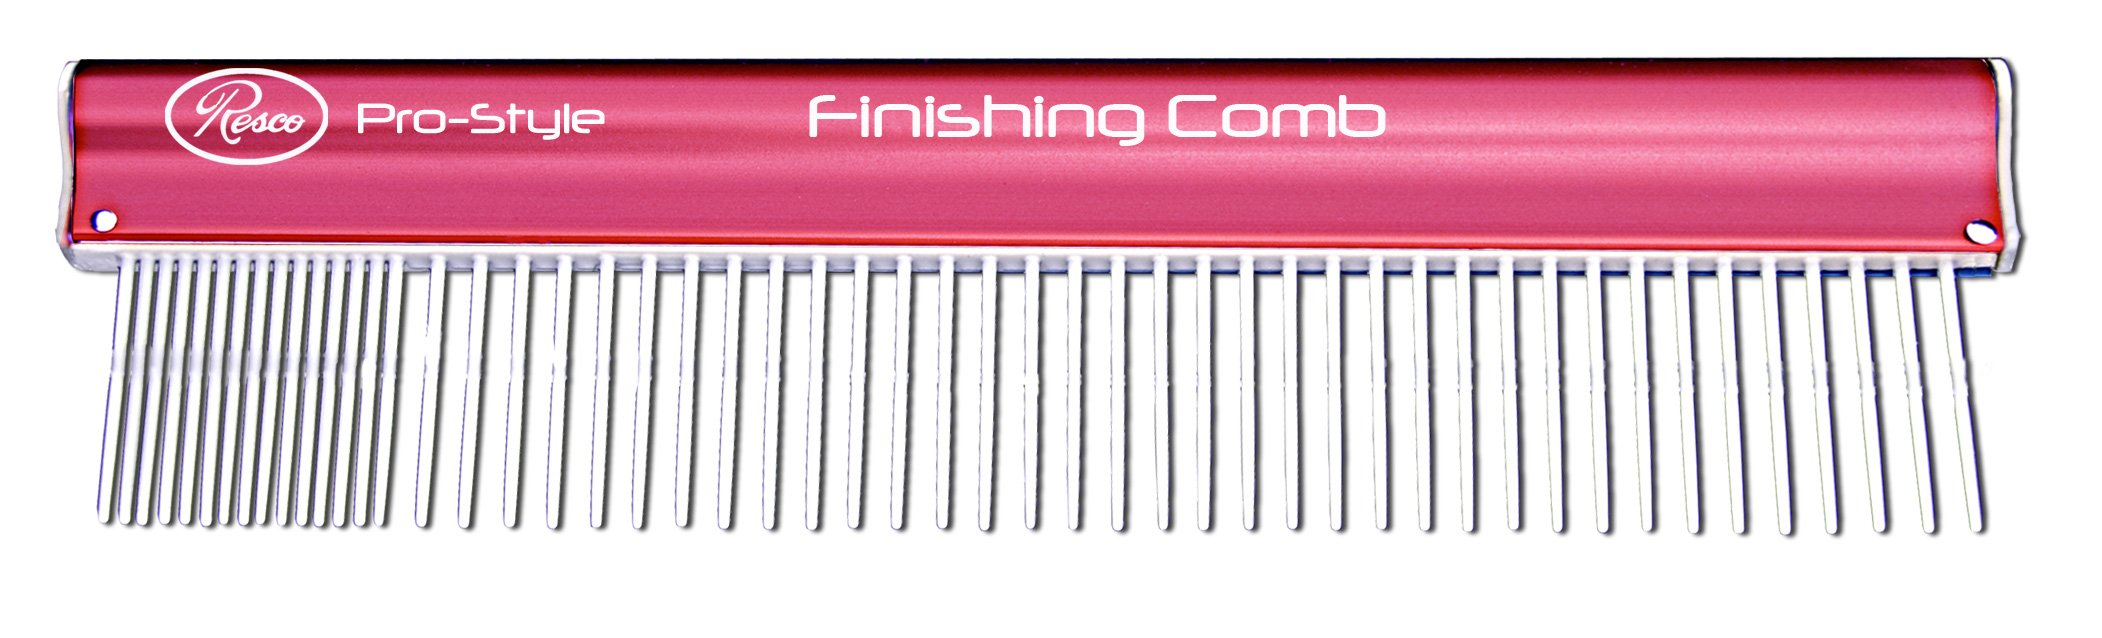 Resco Pro-Style 10'' Finishing Comb for Grooming Dogs, Cats, Horses, Pets, Coarse and Fine Tooth Spacing, Pink